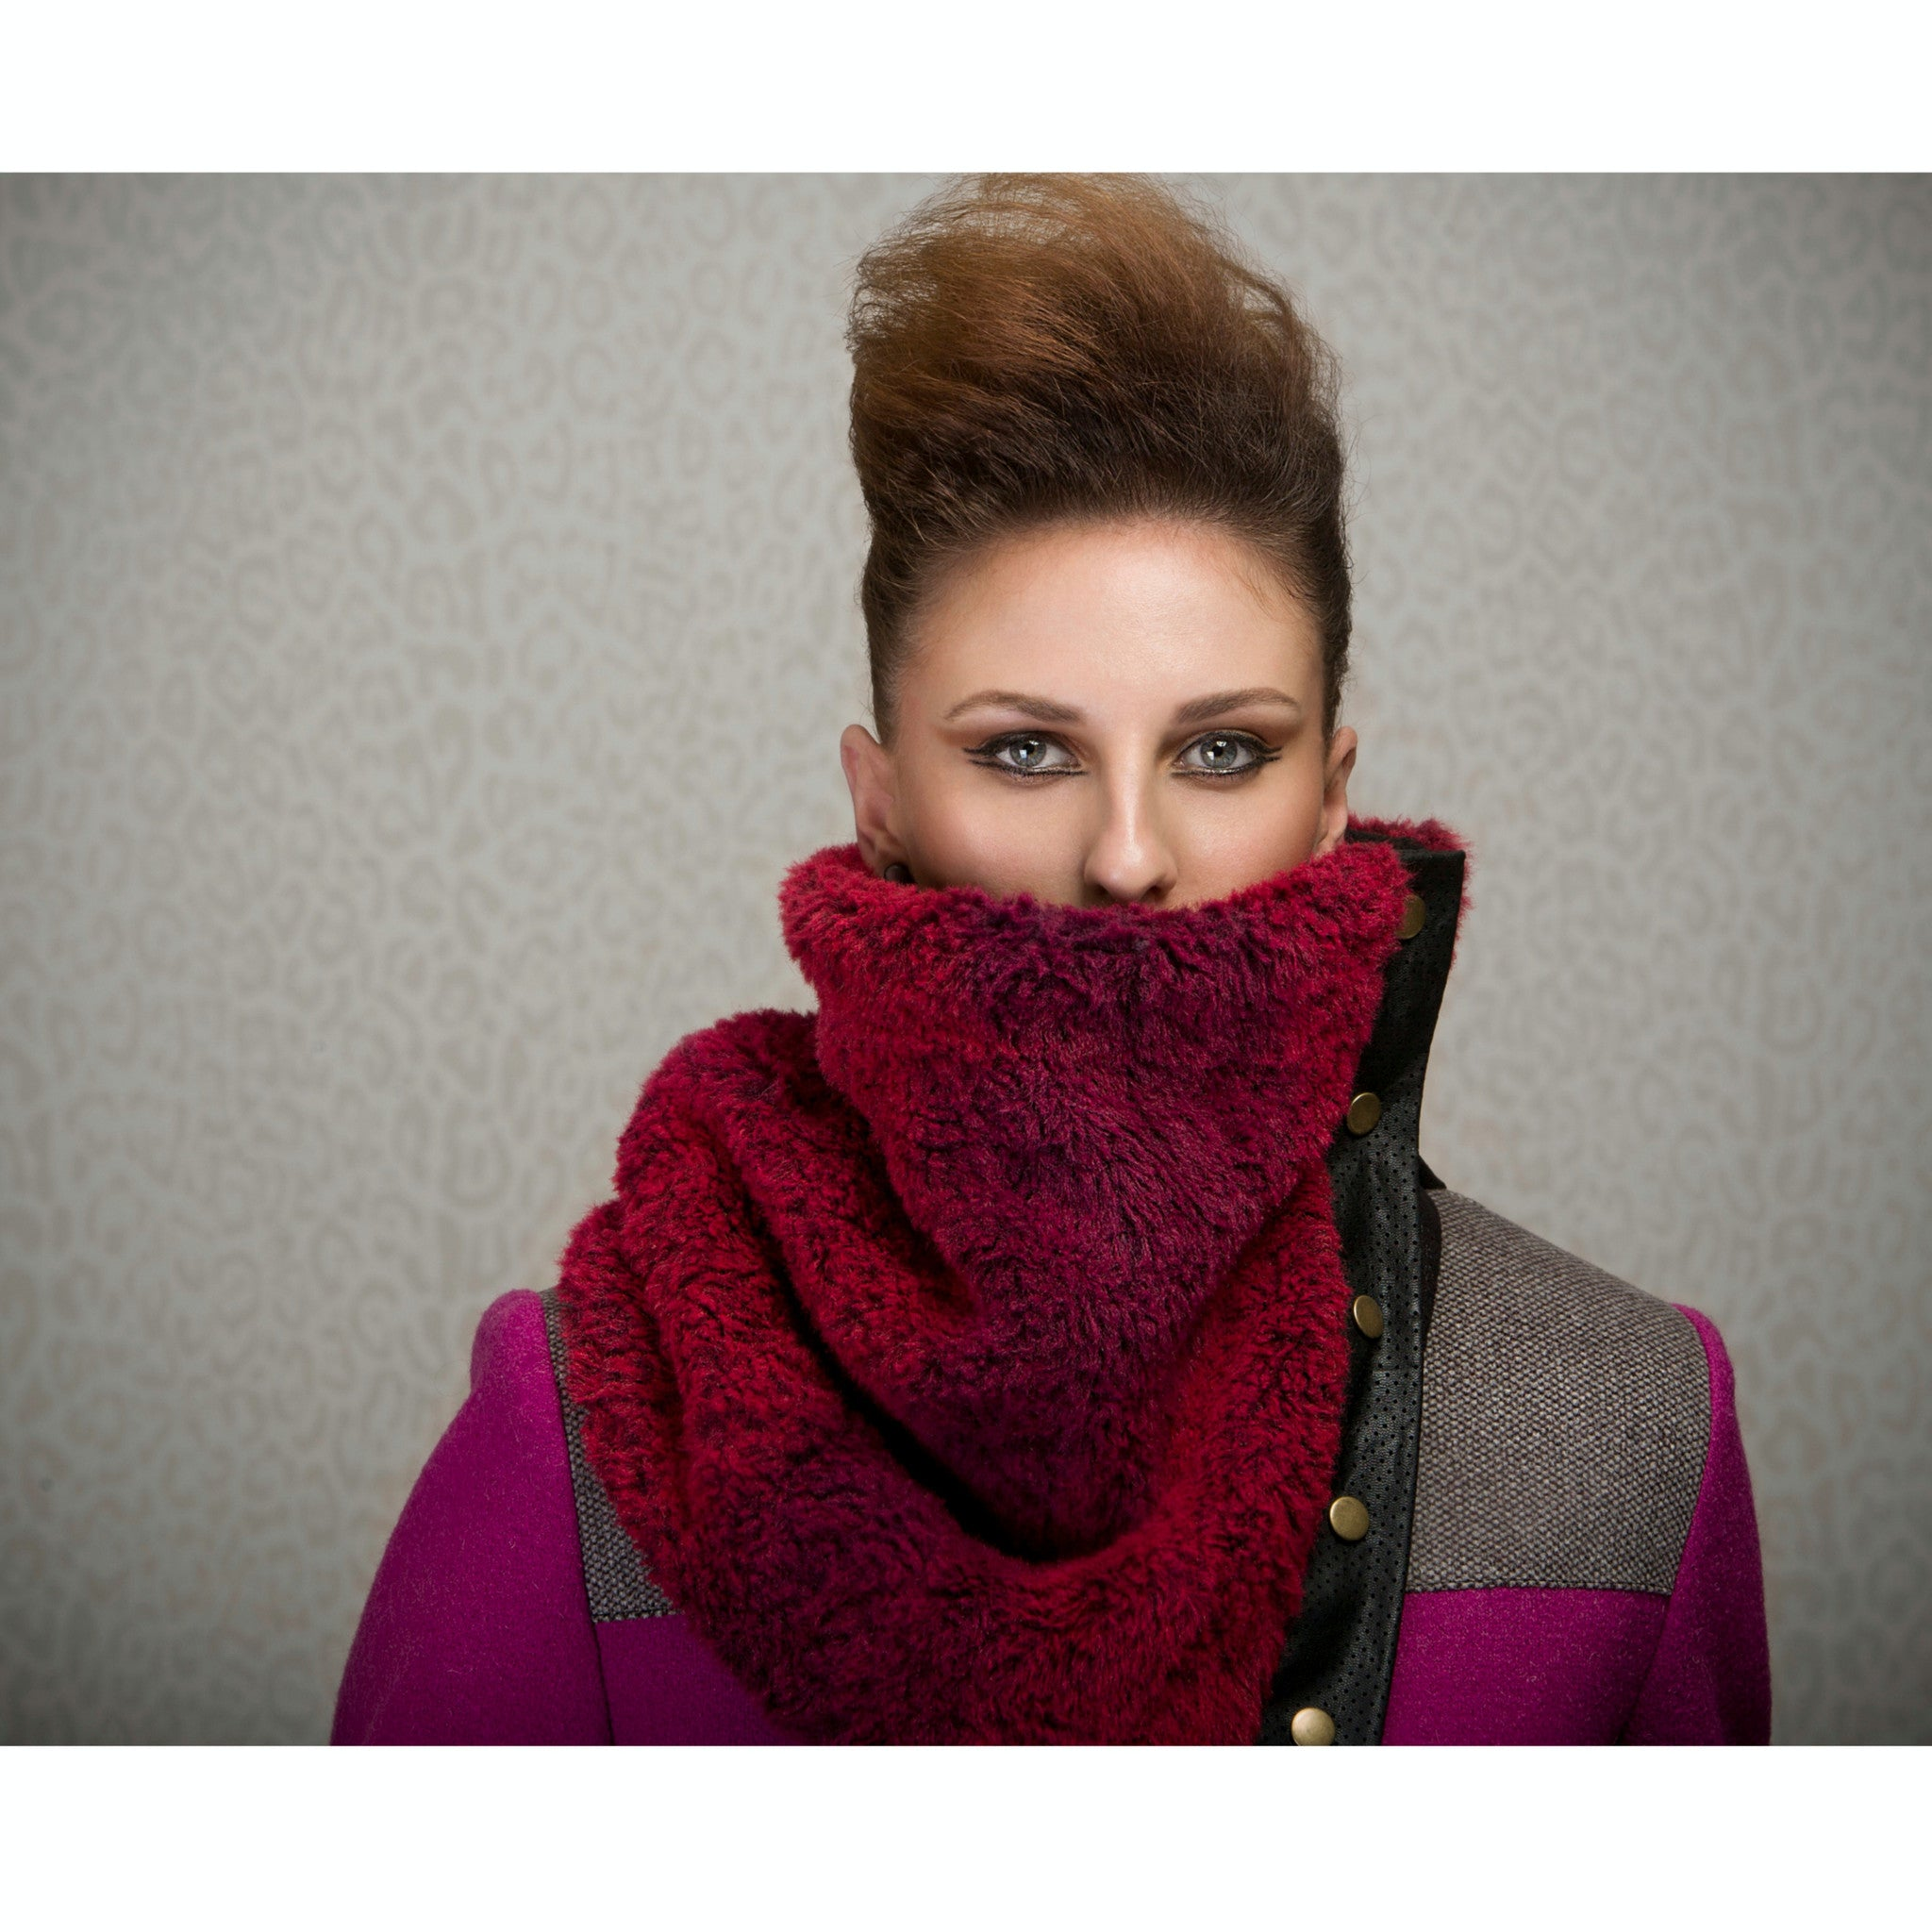 Snap cowl - fur in burgundy